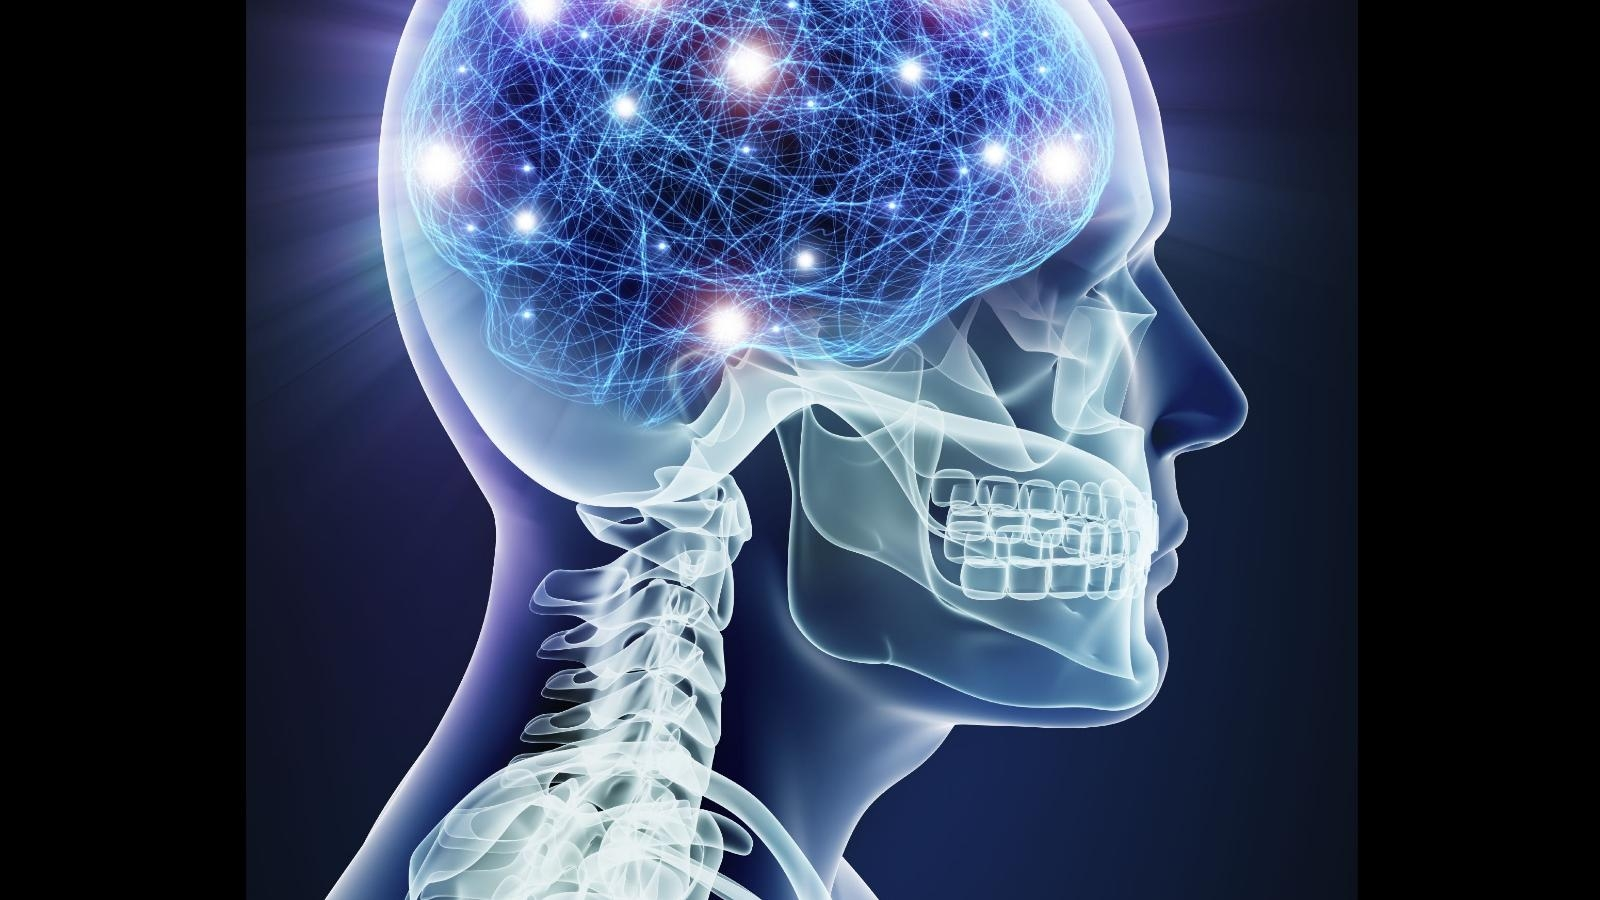 compare human brain and the computer essay Now it's easy to see obvious parallels between, say, human memory and computer memory but, instead, let's explore the comparison further by considering something less obvious, perception and pattern recognition, which is one of the human brain's most important functions.